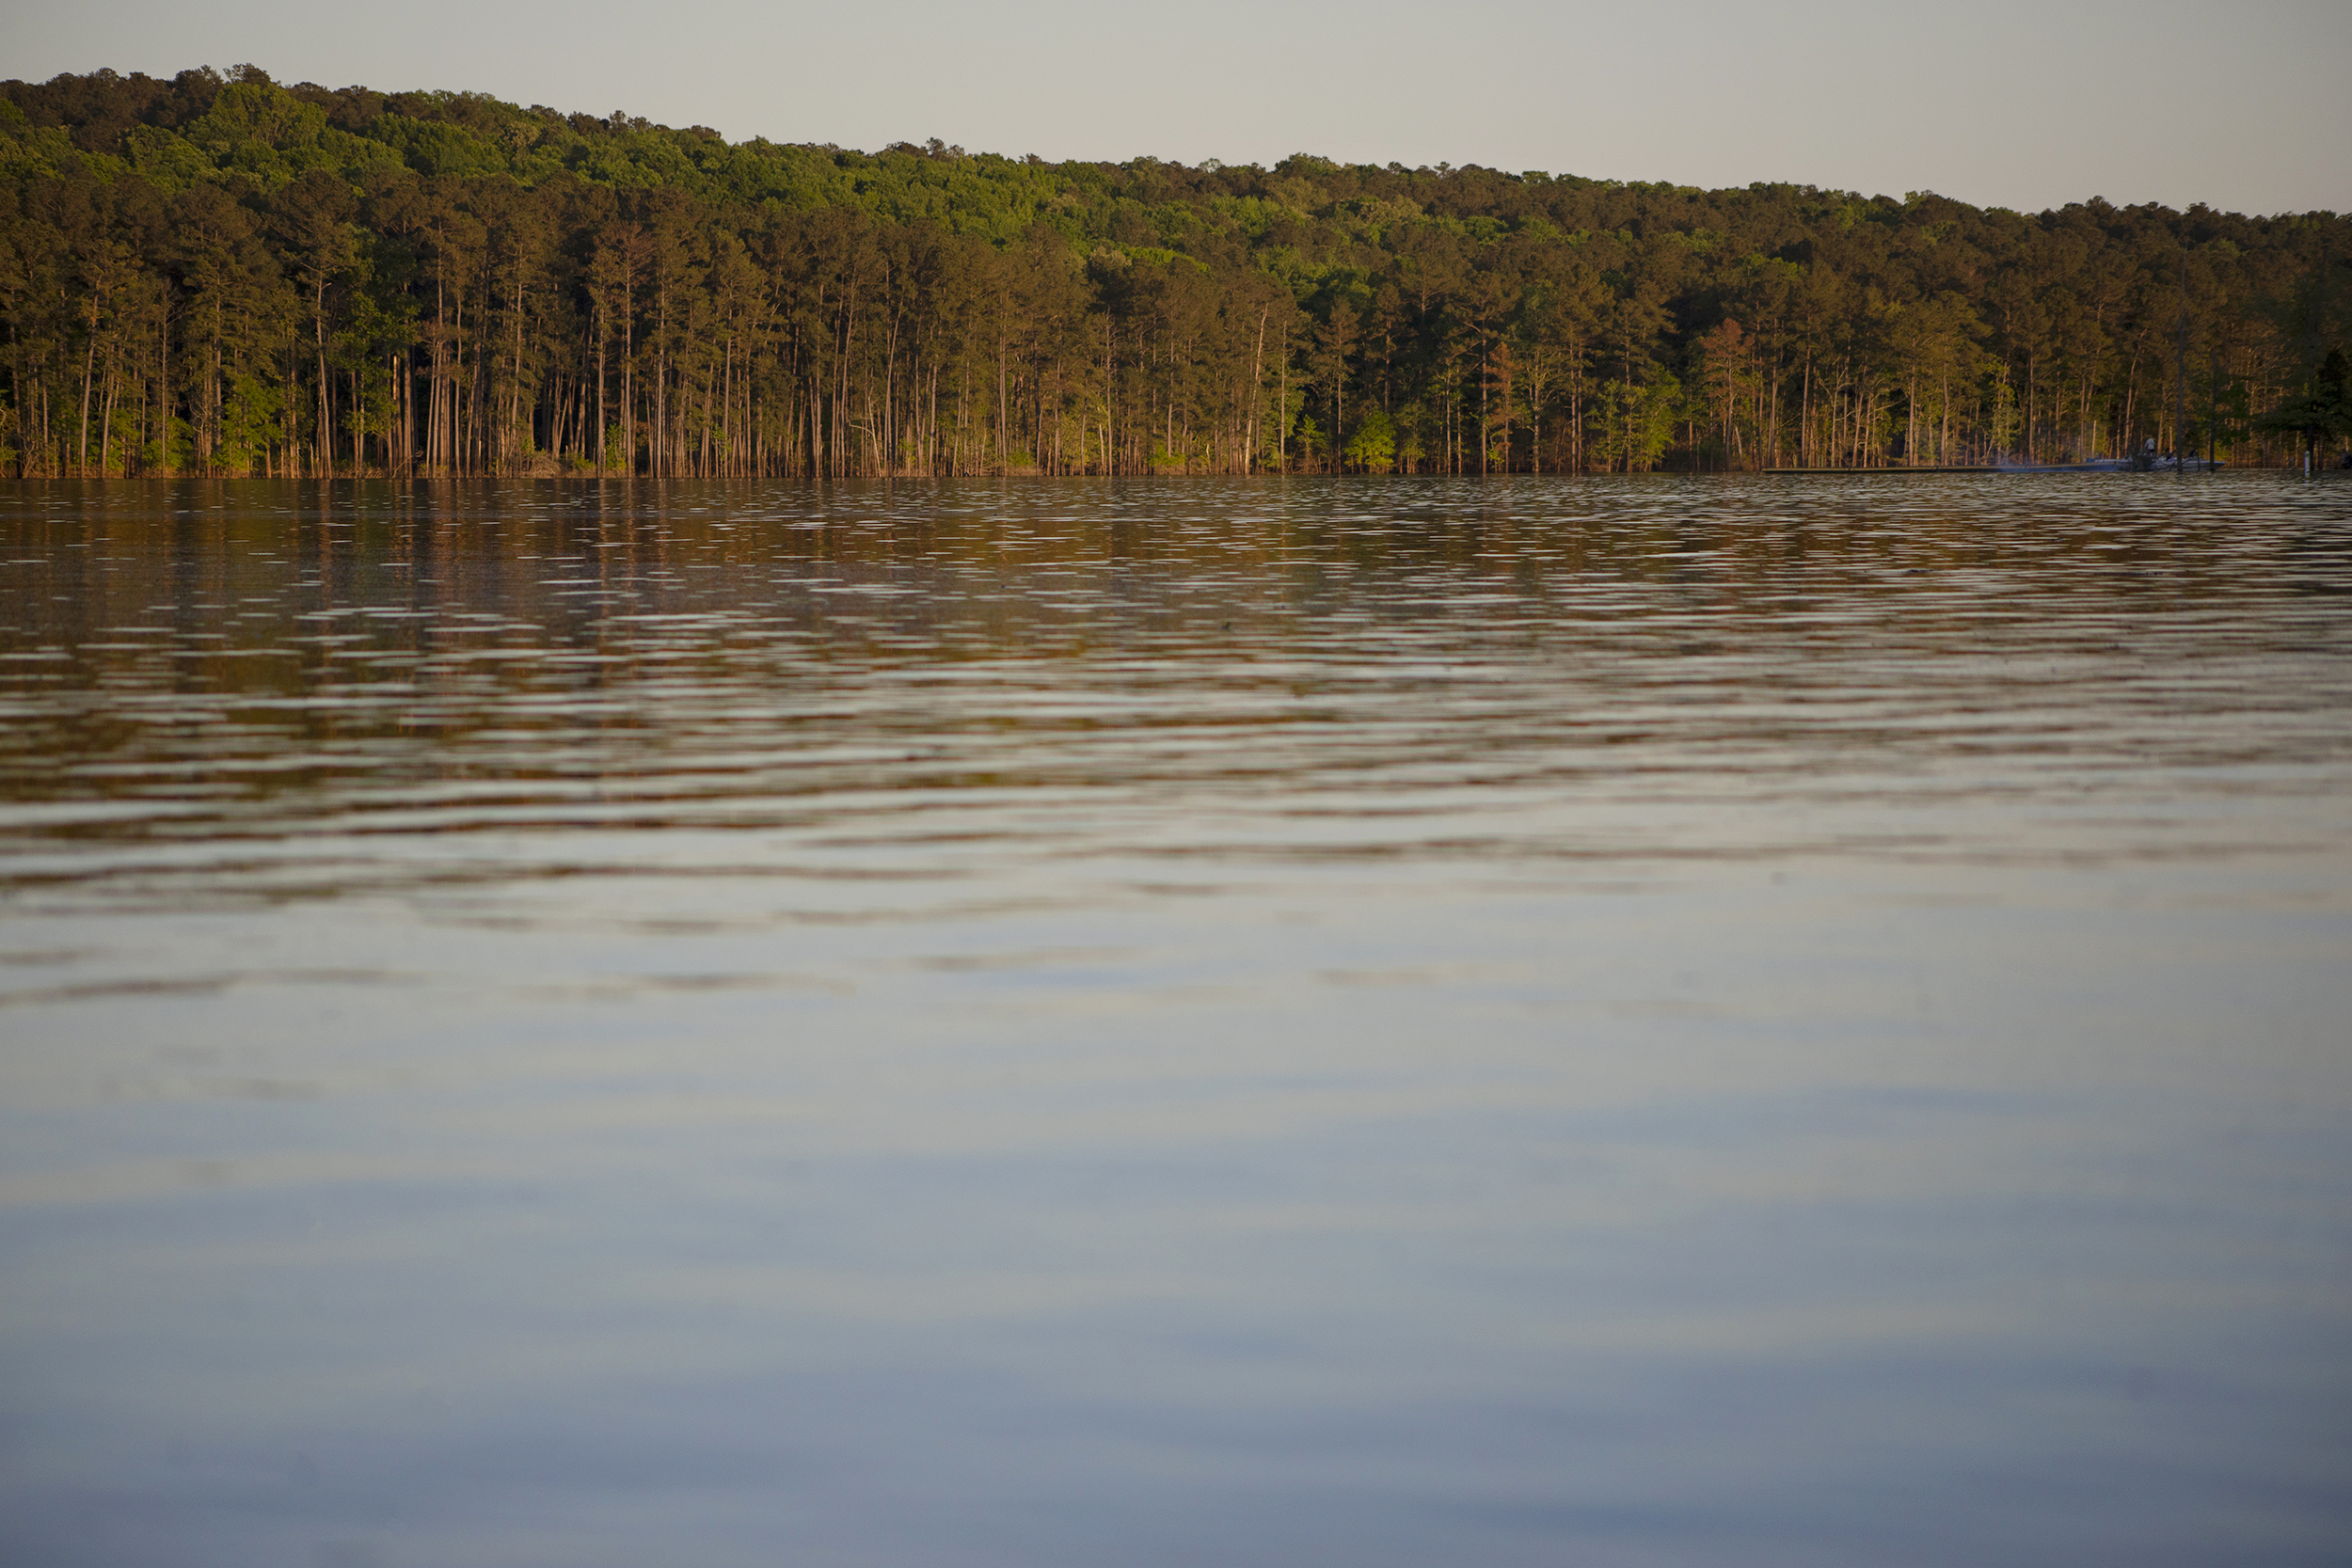 View across Jordan Lake, surrounded by forest.